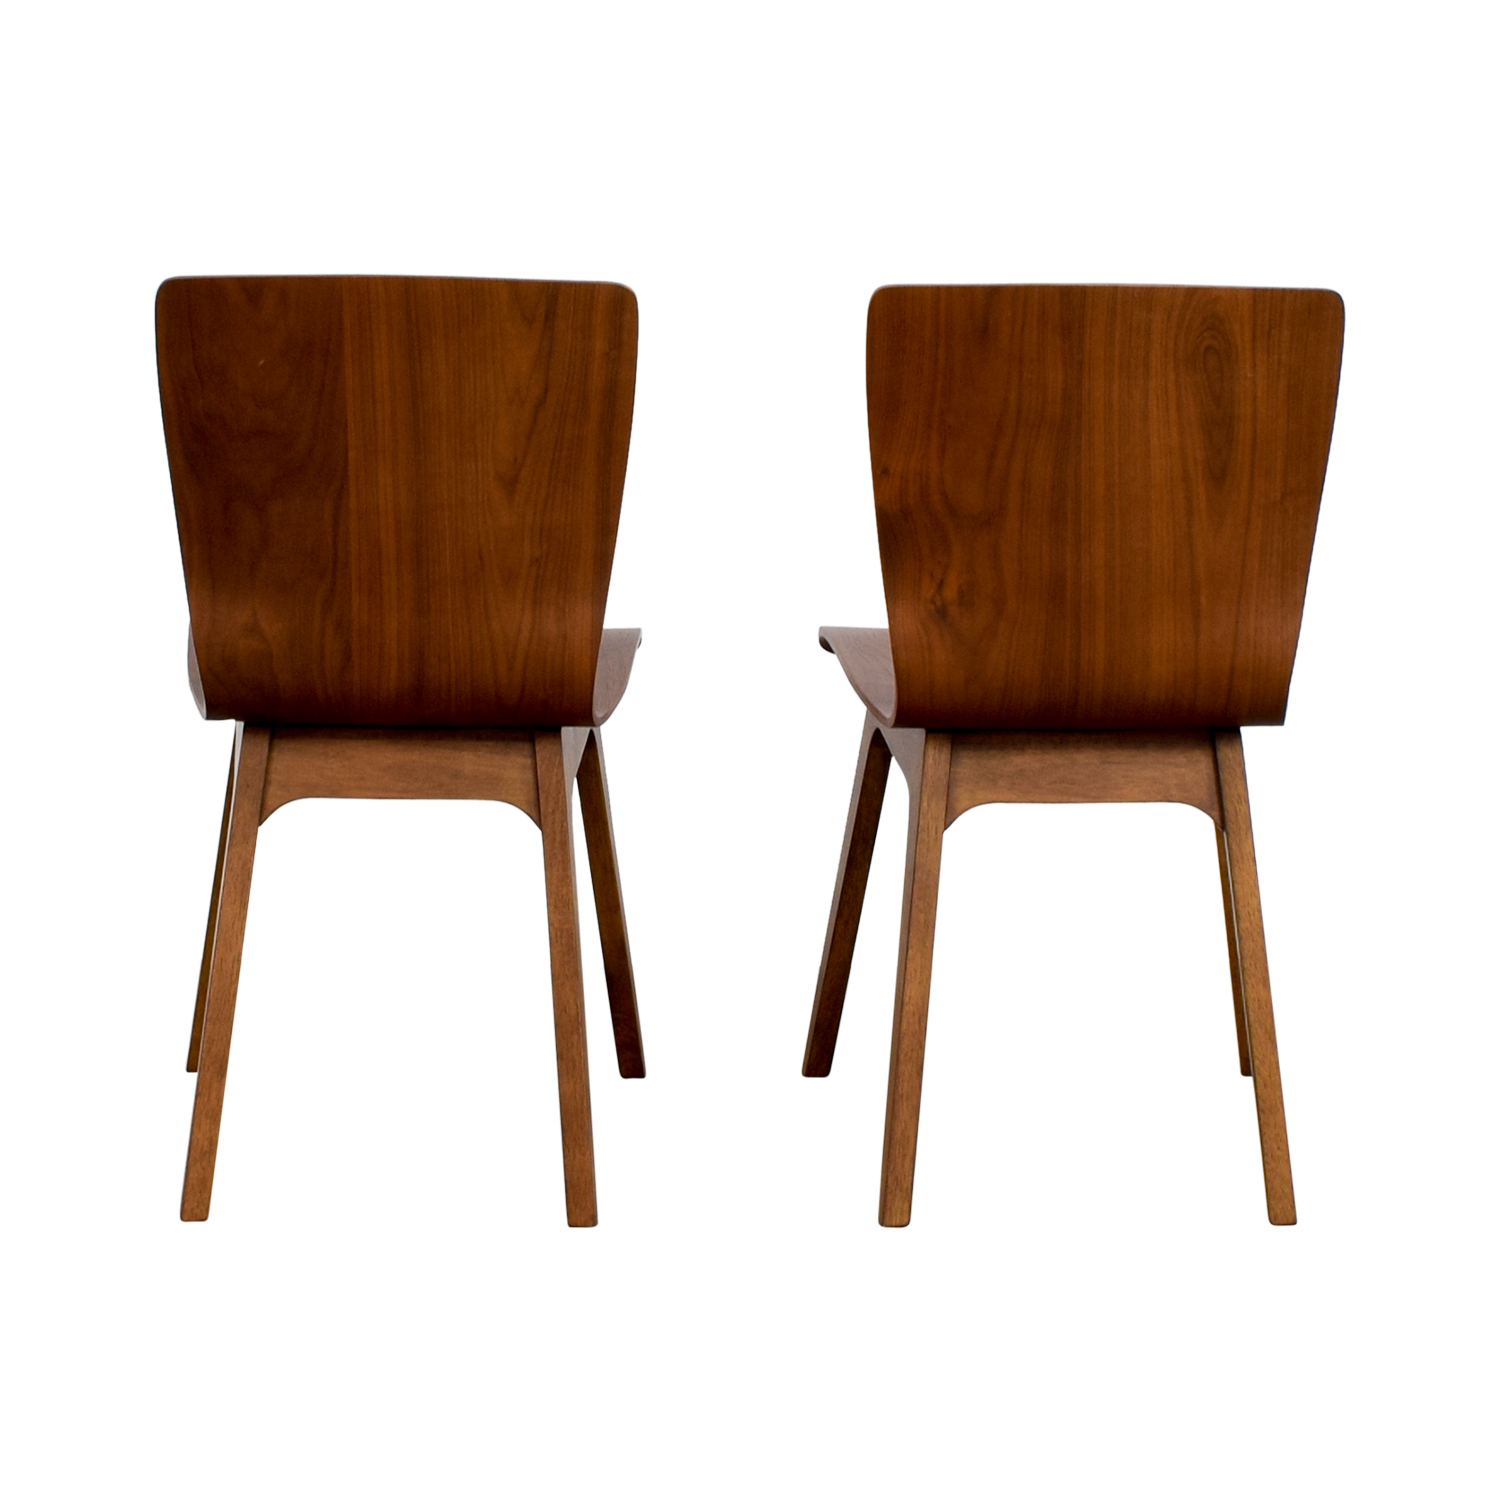 West Elm West Elm Crest Brentwood Chairs for sale